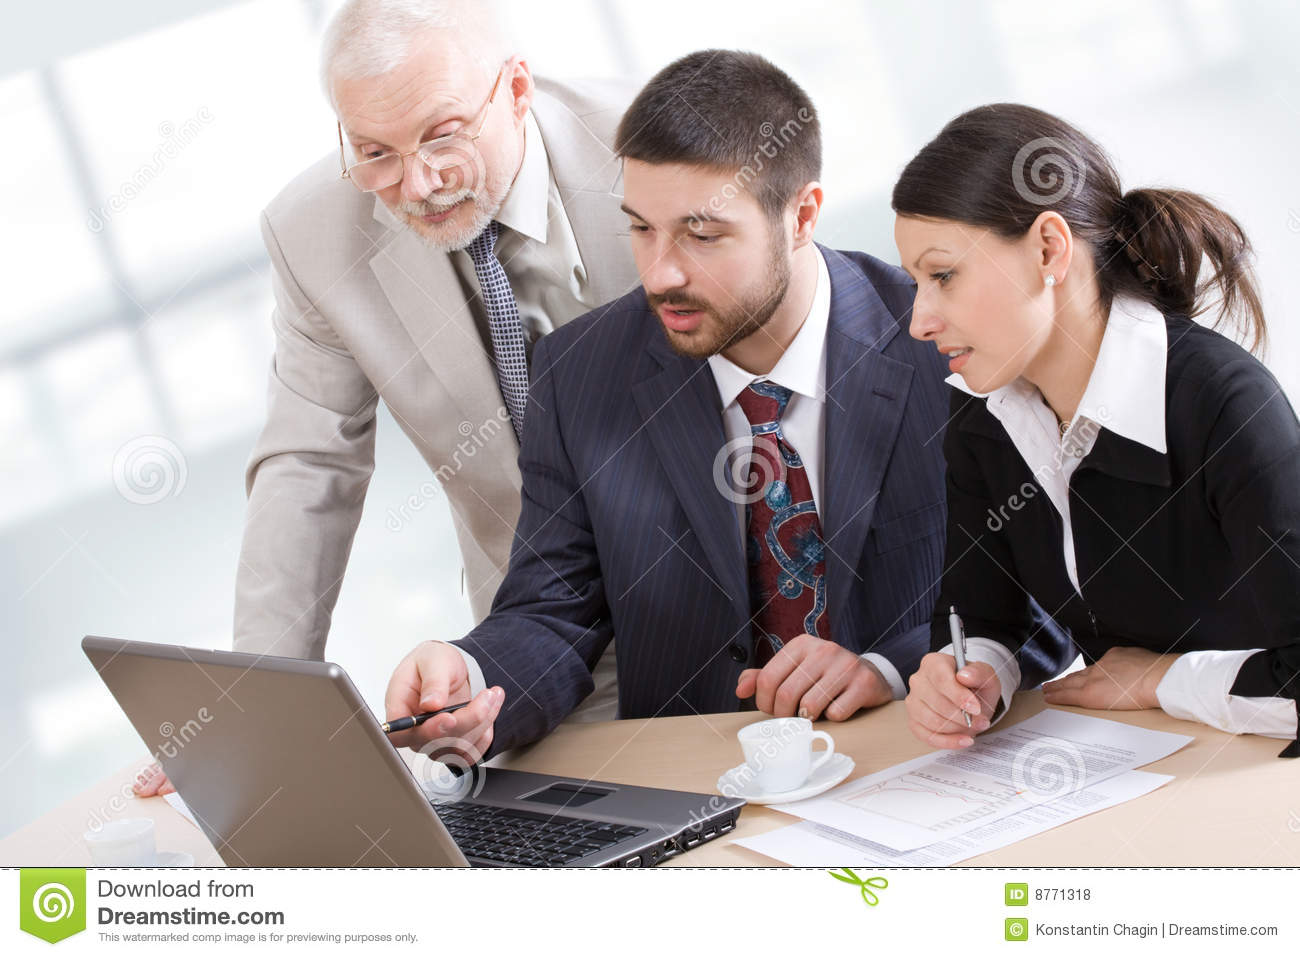 Free Stock Photos Person Working